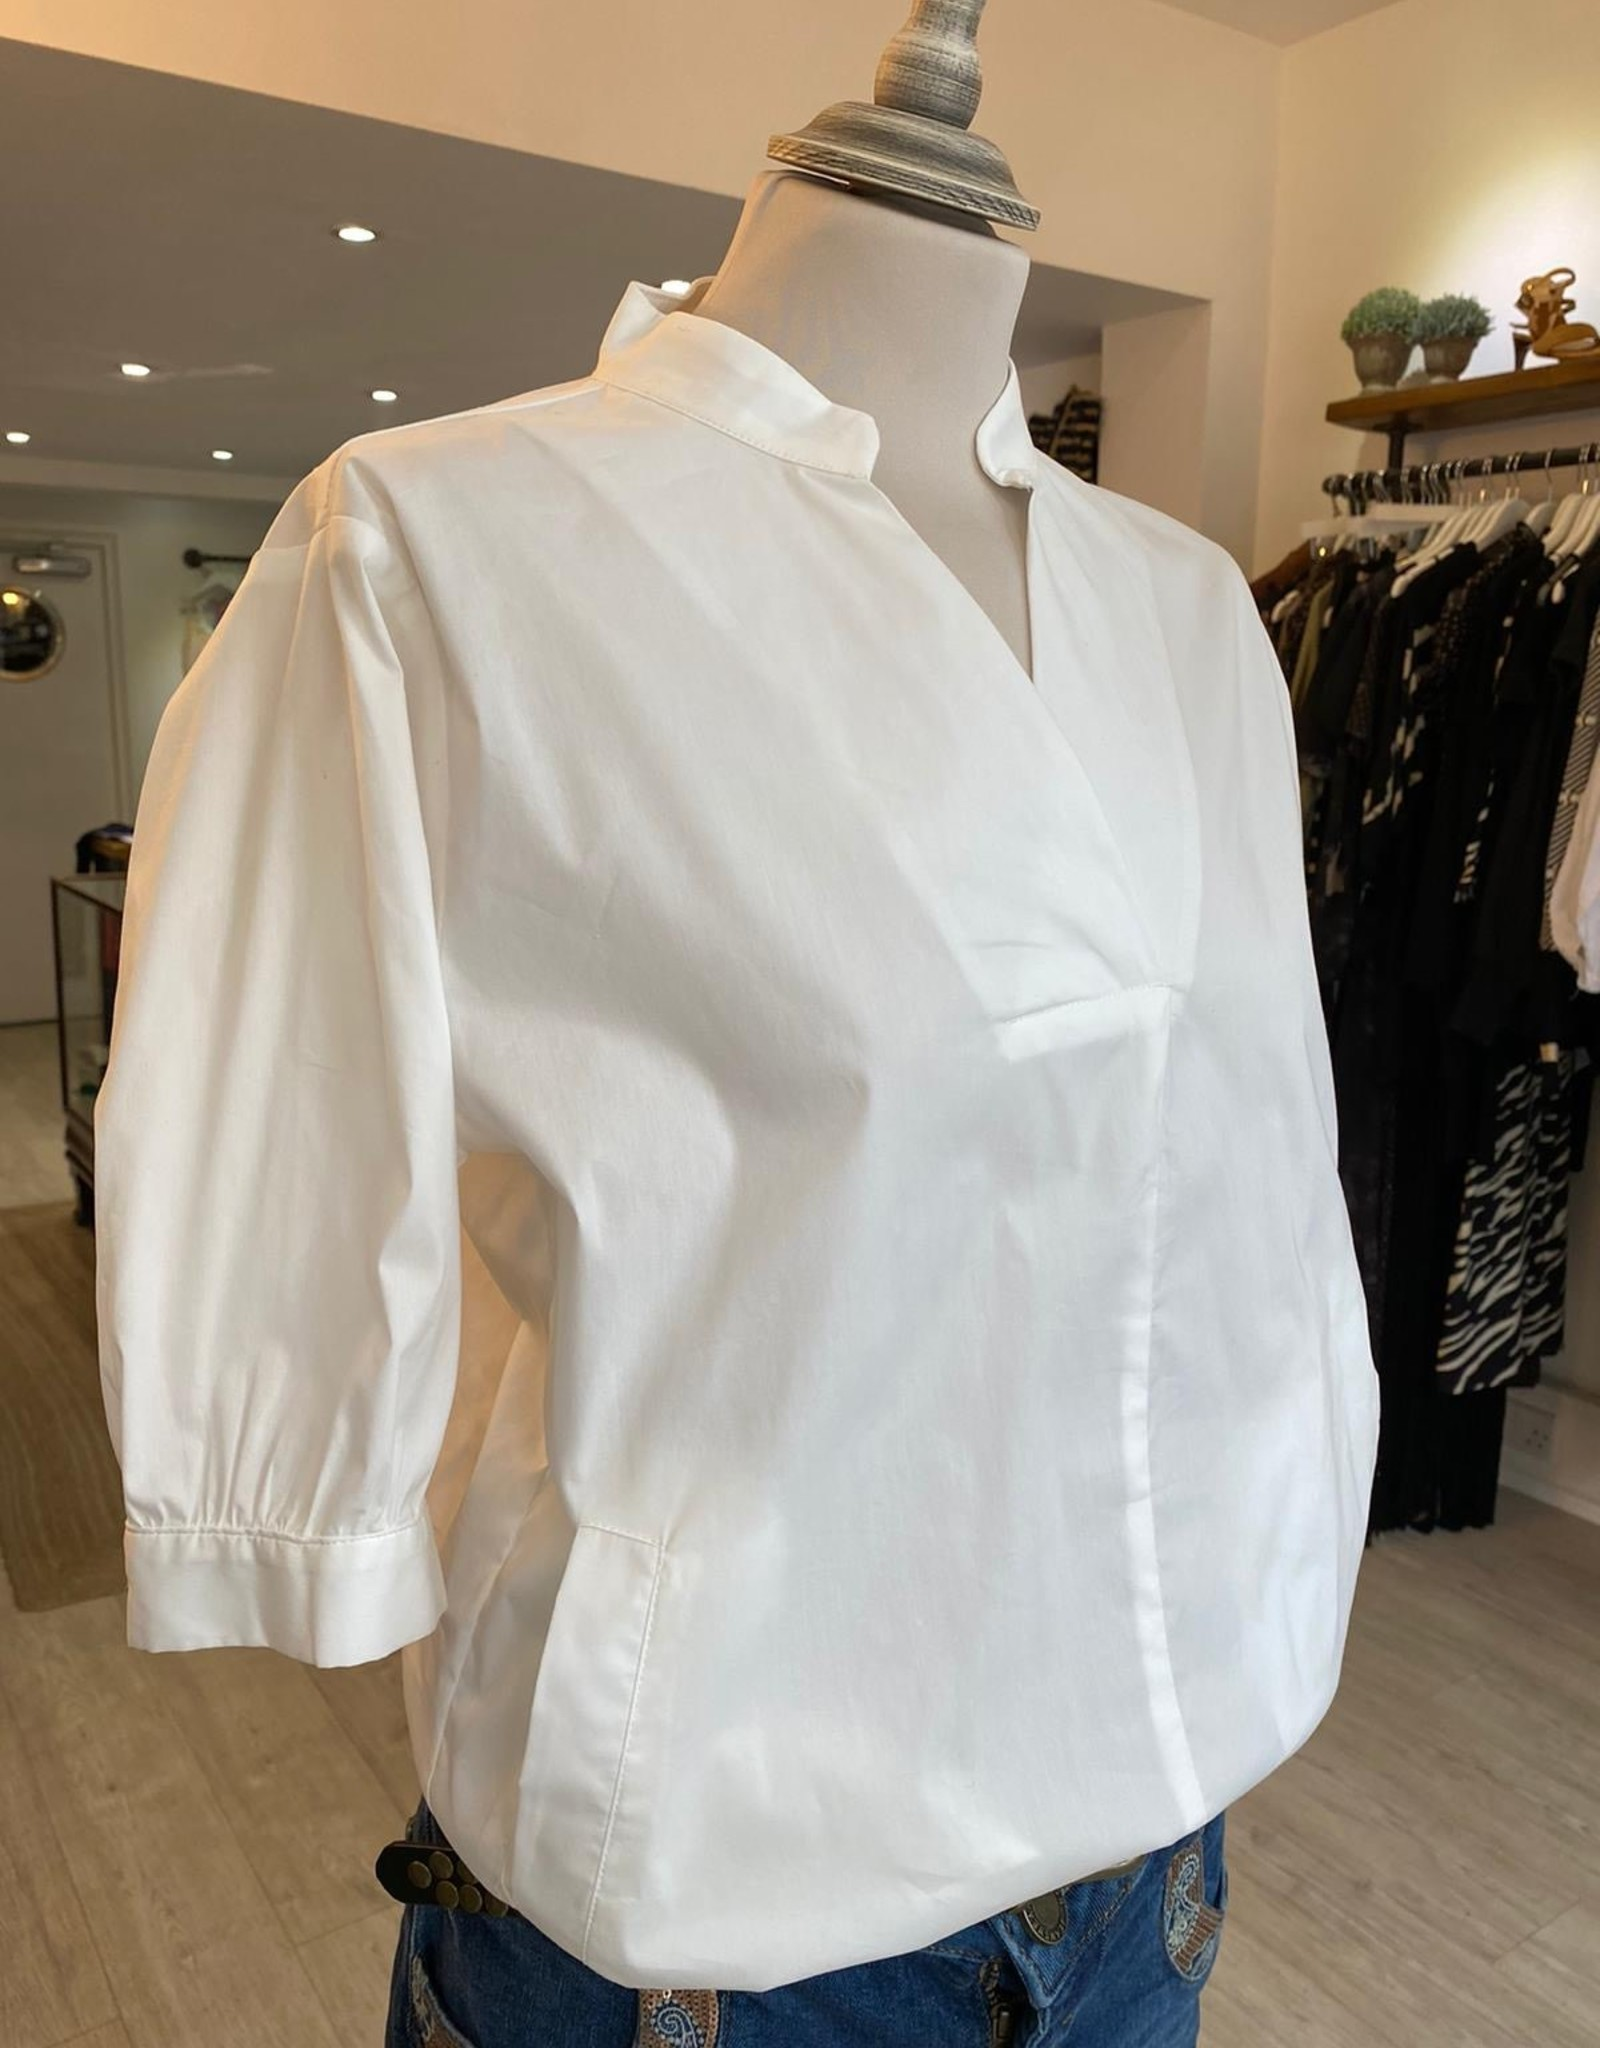 ANONYME (ITALIAN) THAIS ALBA BLOUSE / SS SHIRT  P260ST113 FROM ANONYME